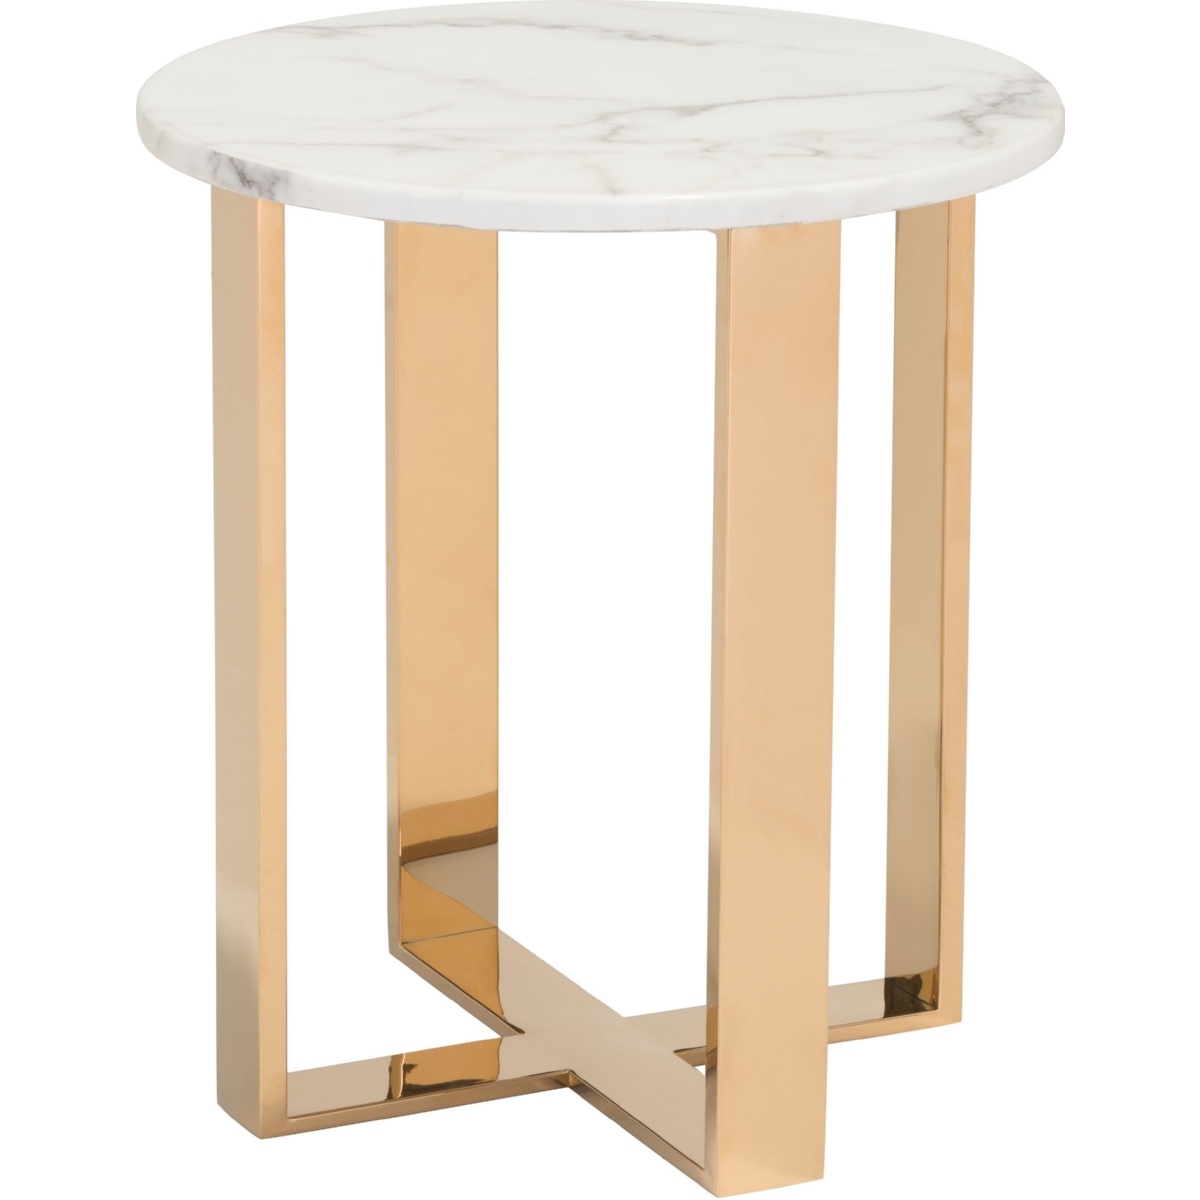 Zuo modern 100653 atlas coffee table w faux marble top on gold atlas end table w faux marble top on gold stainless steel base geotapseo Images